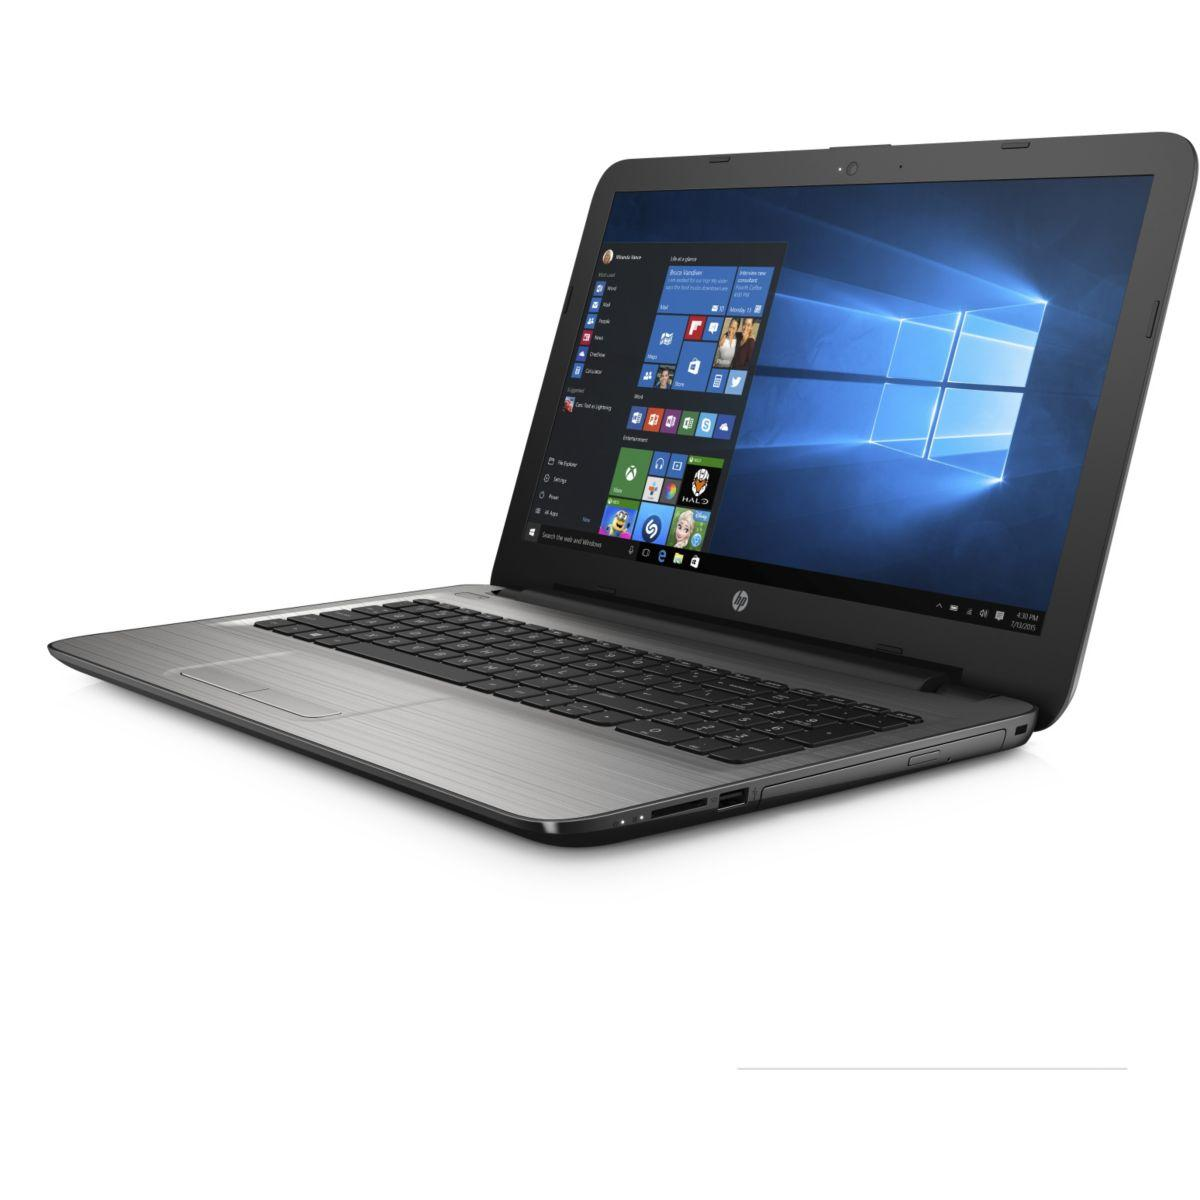 Portable hp 15-ay106nf - livraison offerte : code livfree (photo)